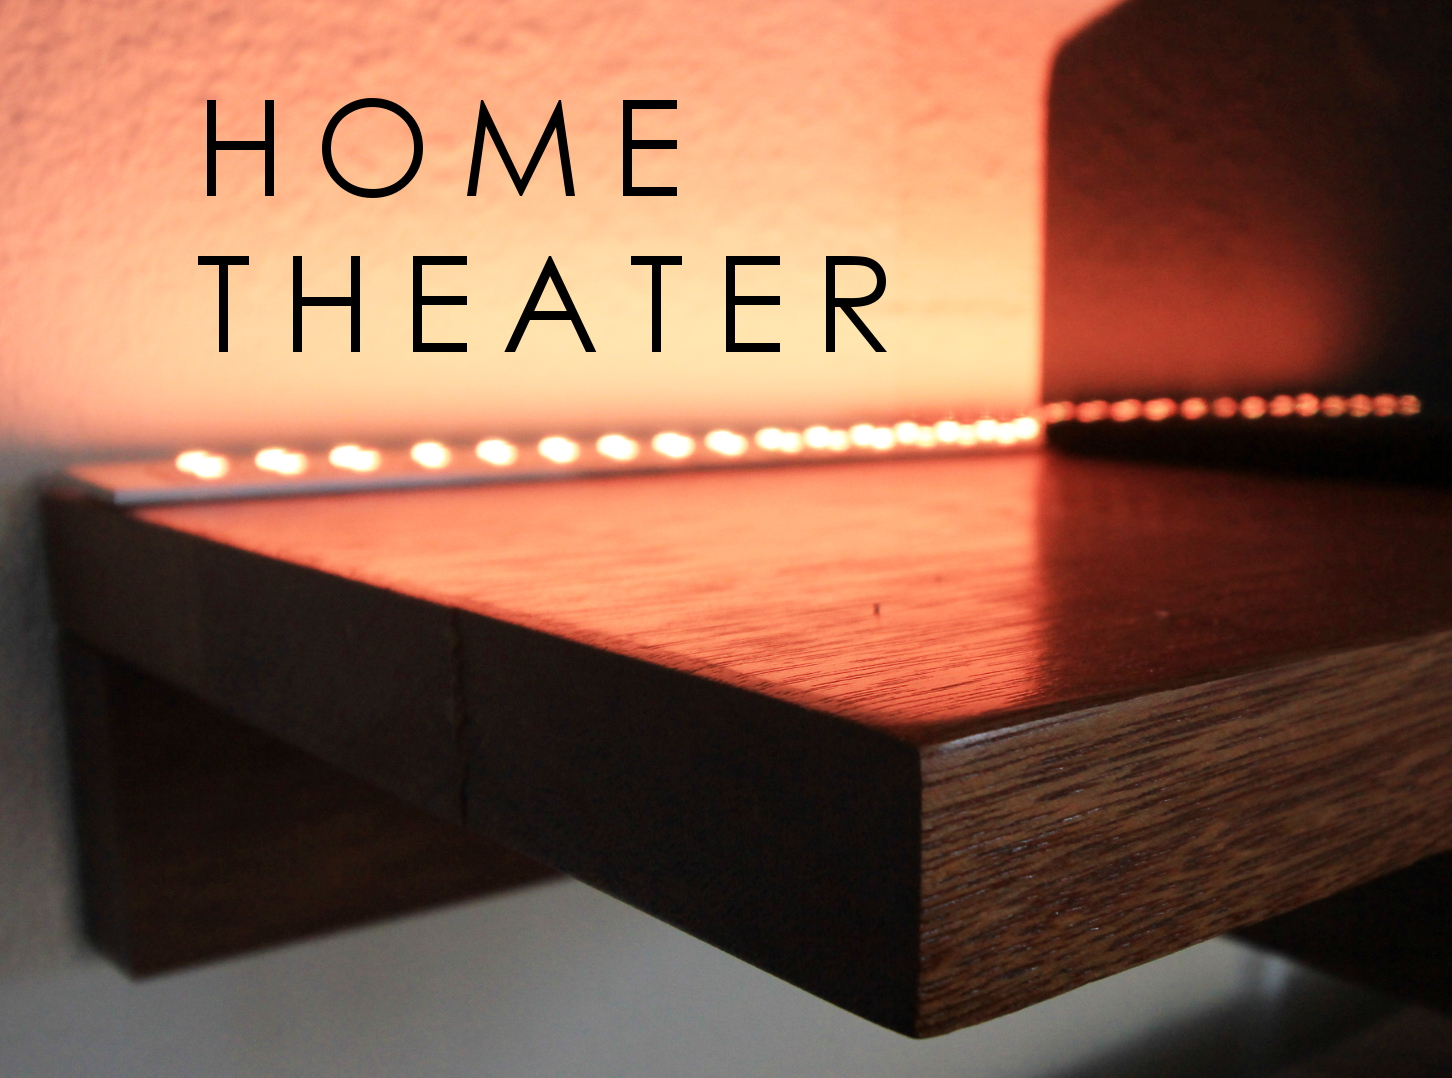 Picture of Home Theater LED Lighting & Speaker Set-Up